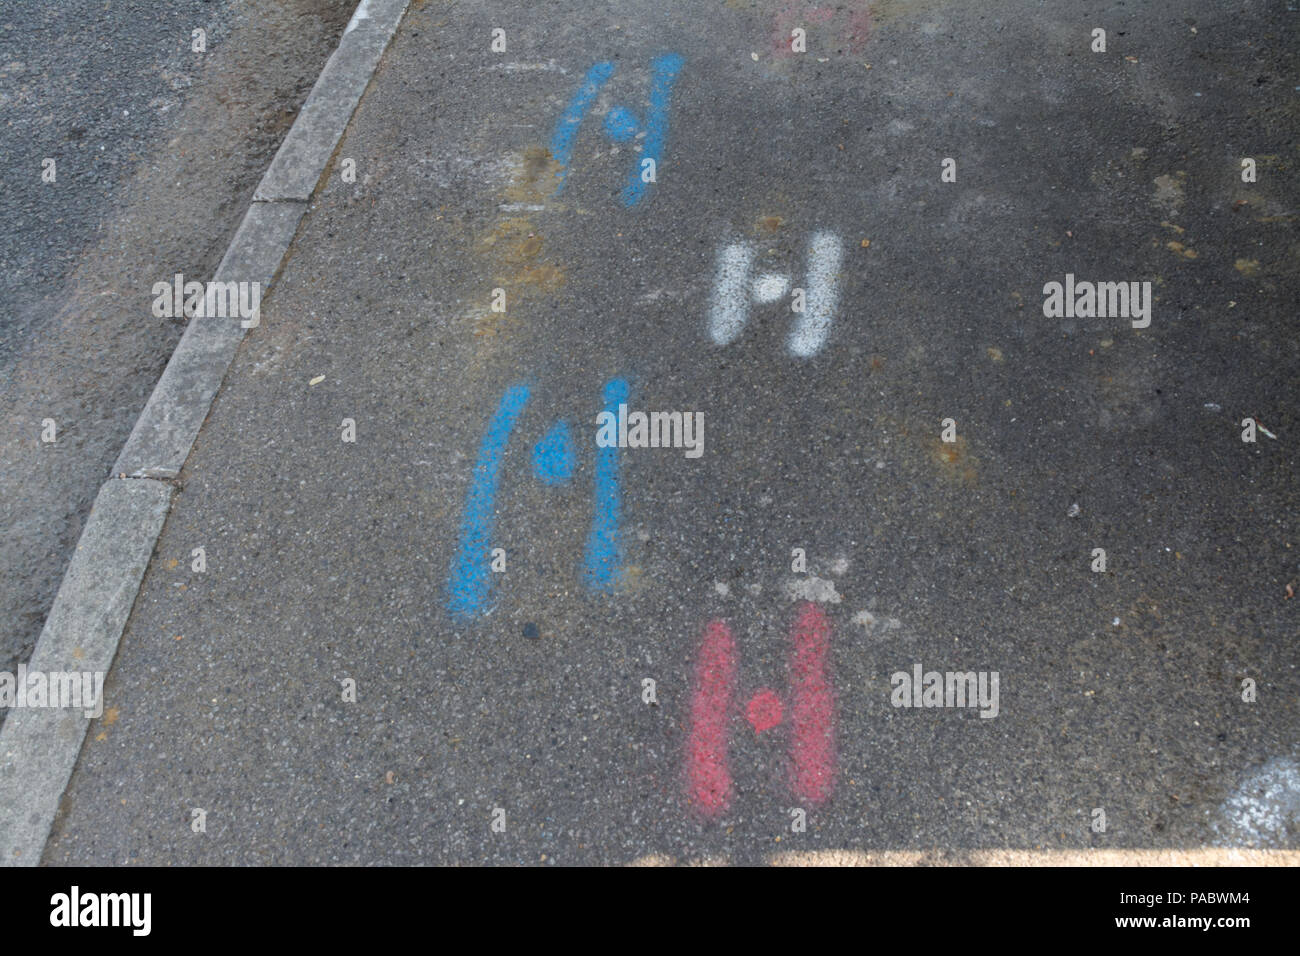 Spray painted markings squiggles on pavement made by contractors to indicate positioning of water, gas and electric utilities, pipes, cables - Stock Image